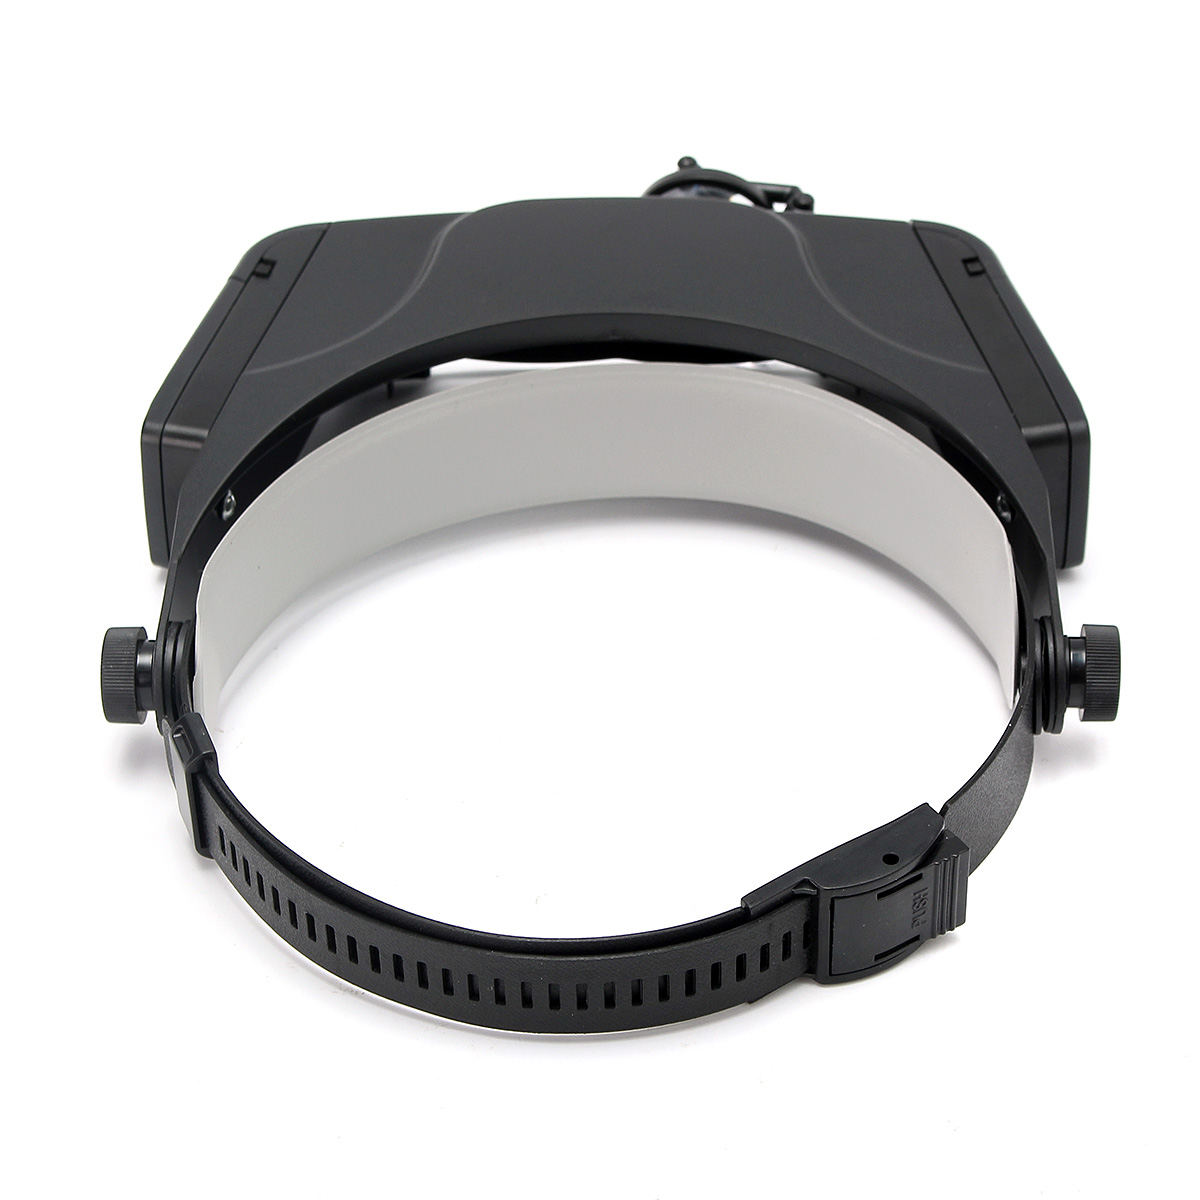 Head Wearing Repairing Magnifier Head Band Loupe Magnifying Glass with LED Light